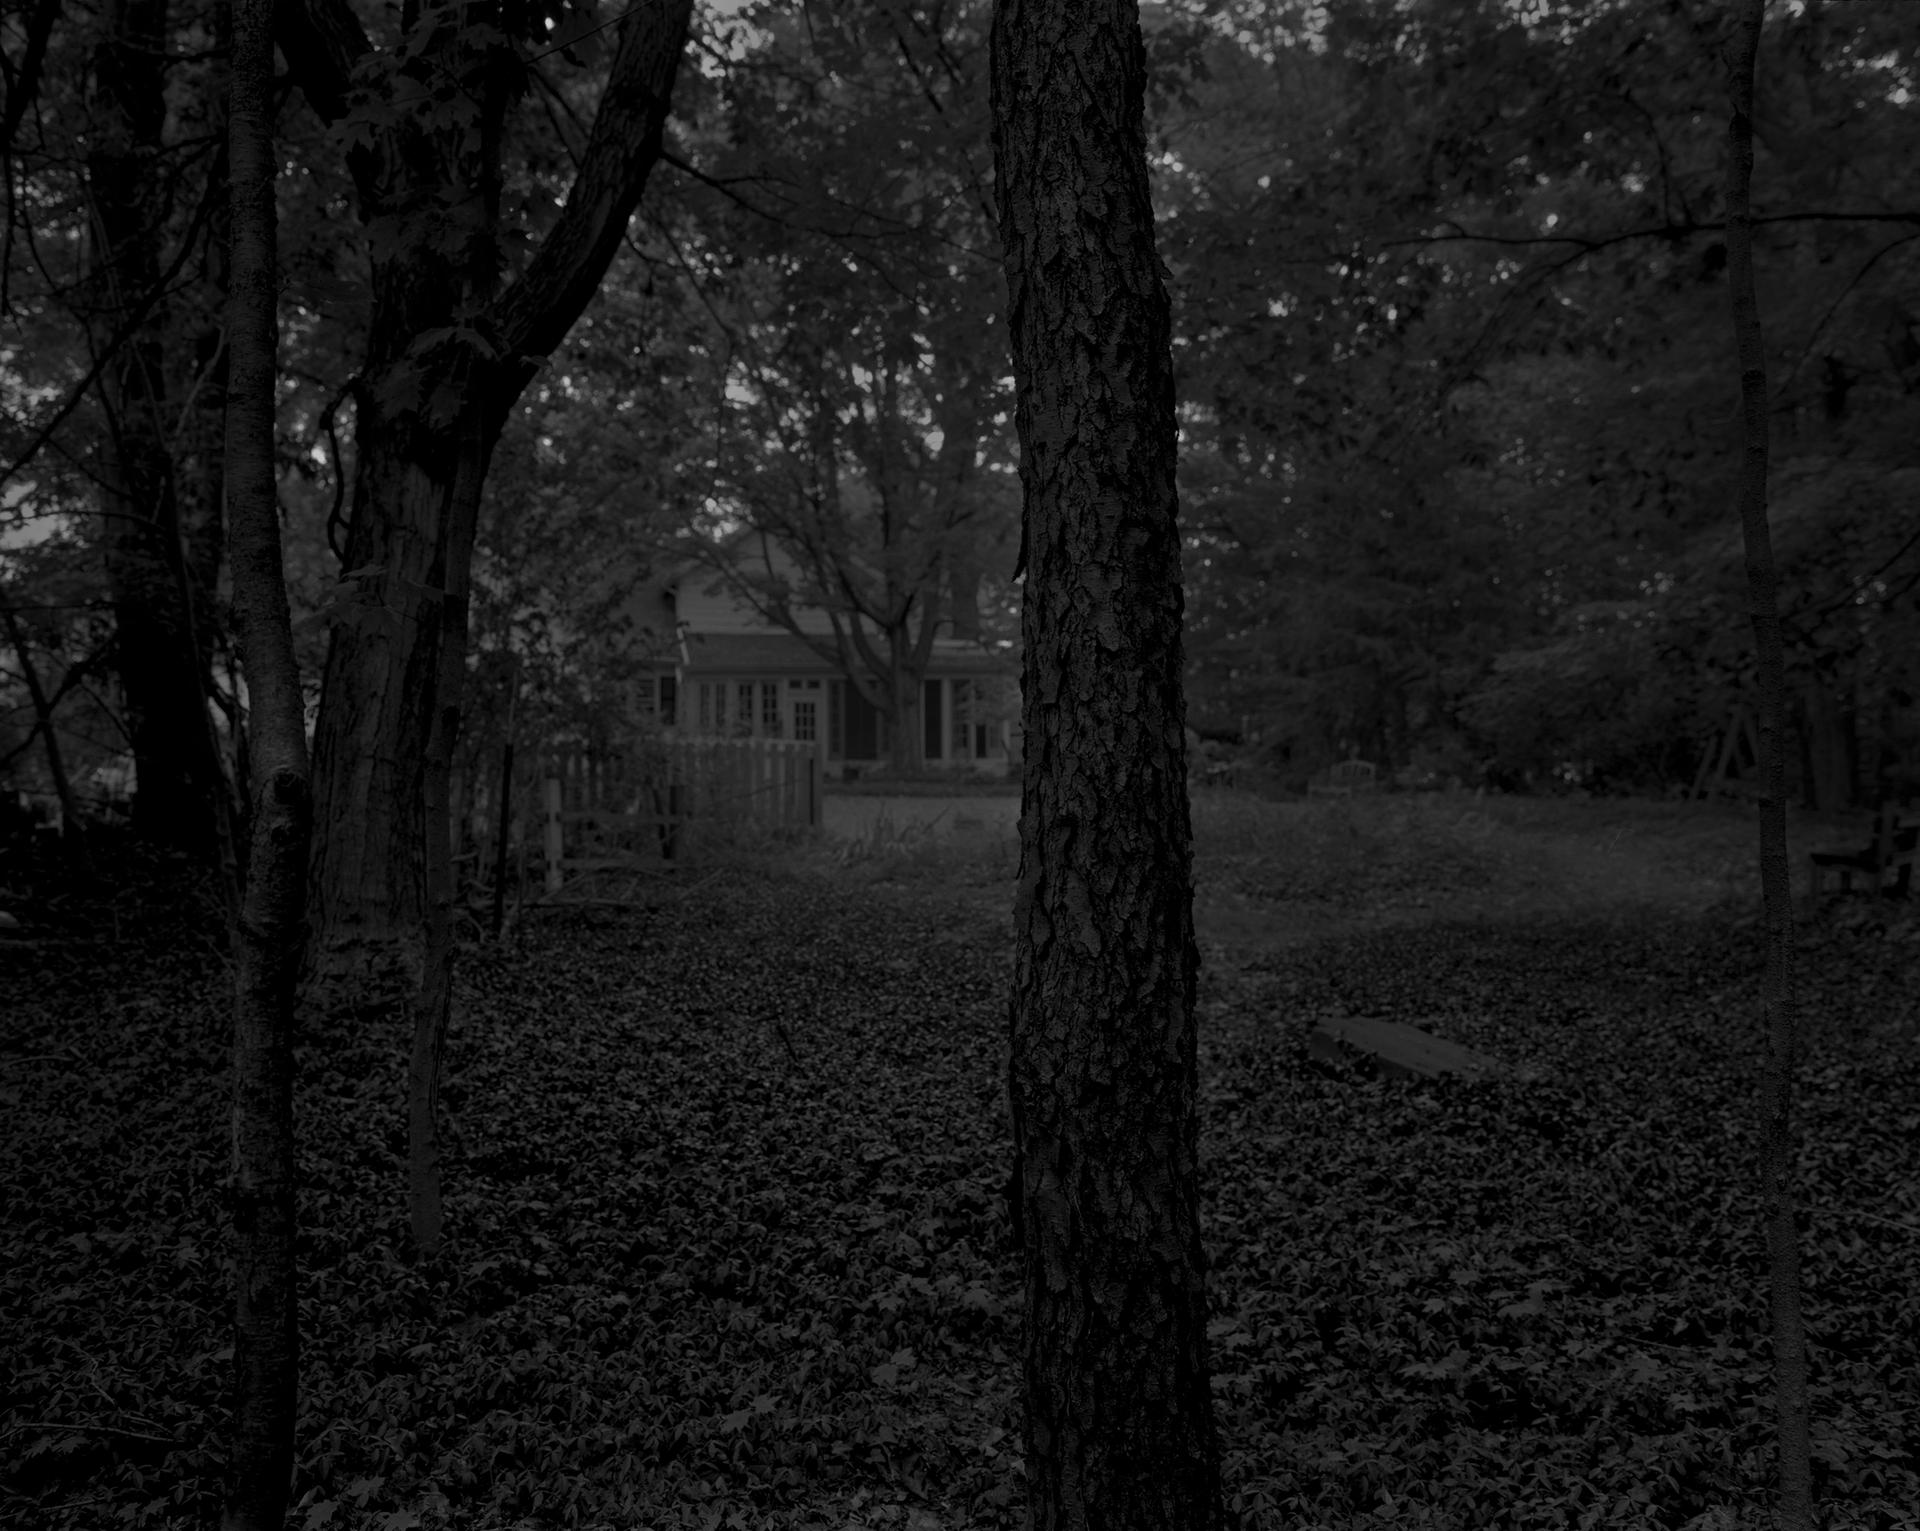 Dawoud Bey, Untitled #2 (Trees and Farmhouse), from the series Night Coming Tenderly, Black (2017) Rennie Collection, Vancouver. © Dawoud Bey